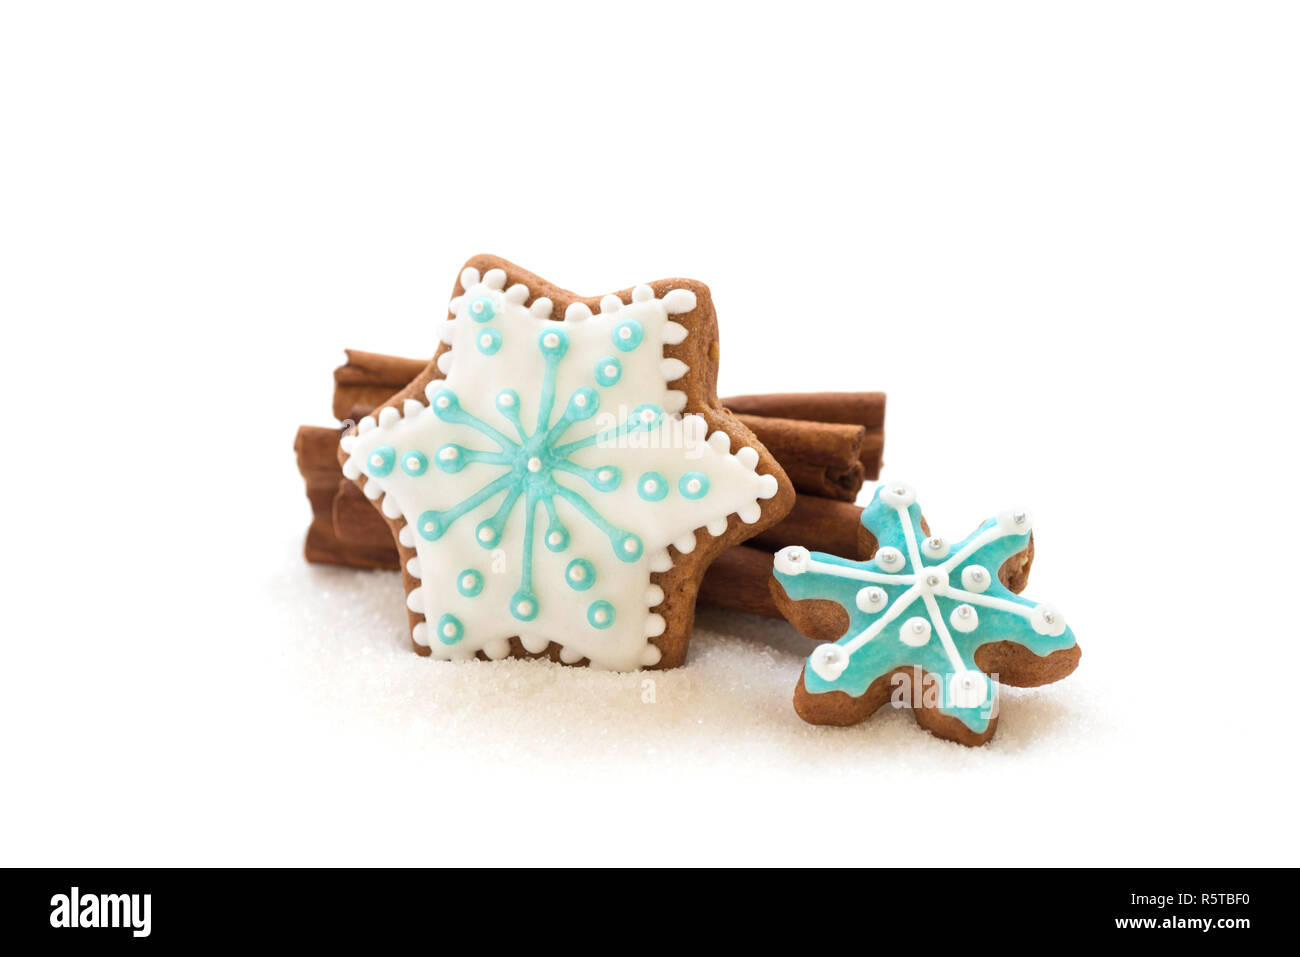 Christmas dekoration with cookies in the shape of snowflakes and stars on a white background - Stock Image